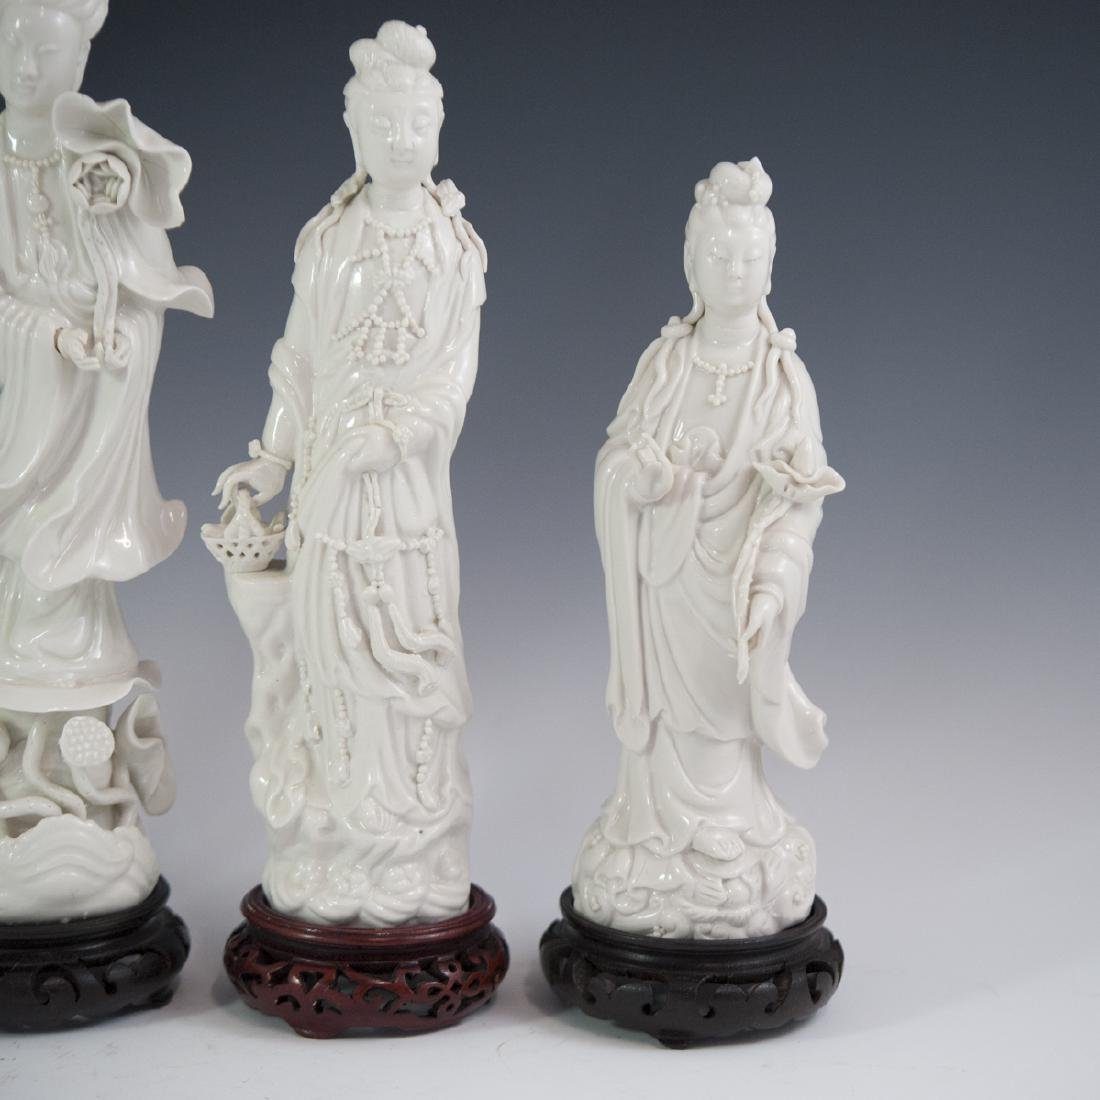 Chinese Blanc De Chine Guanyin Figurines - 2